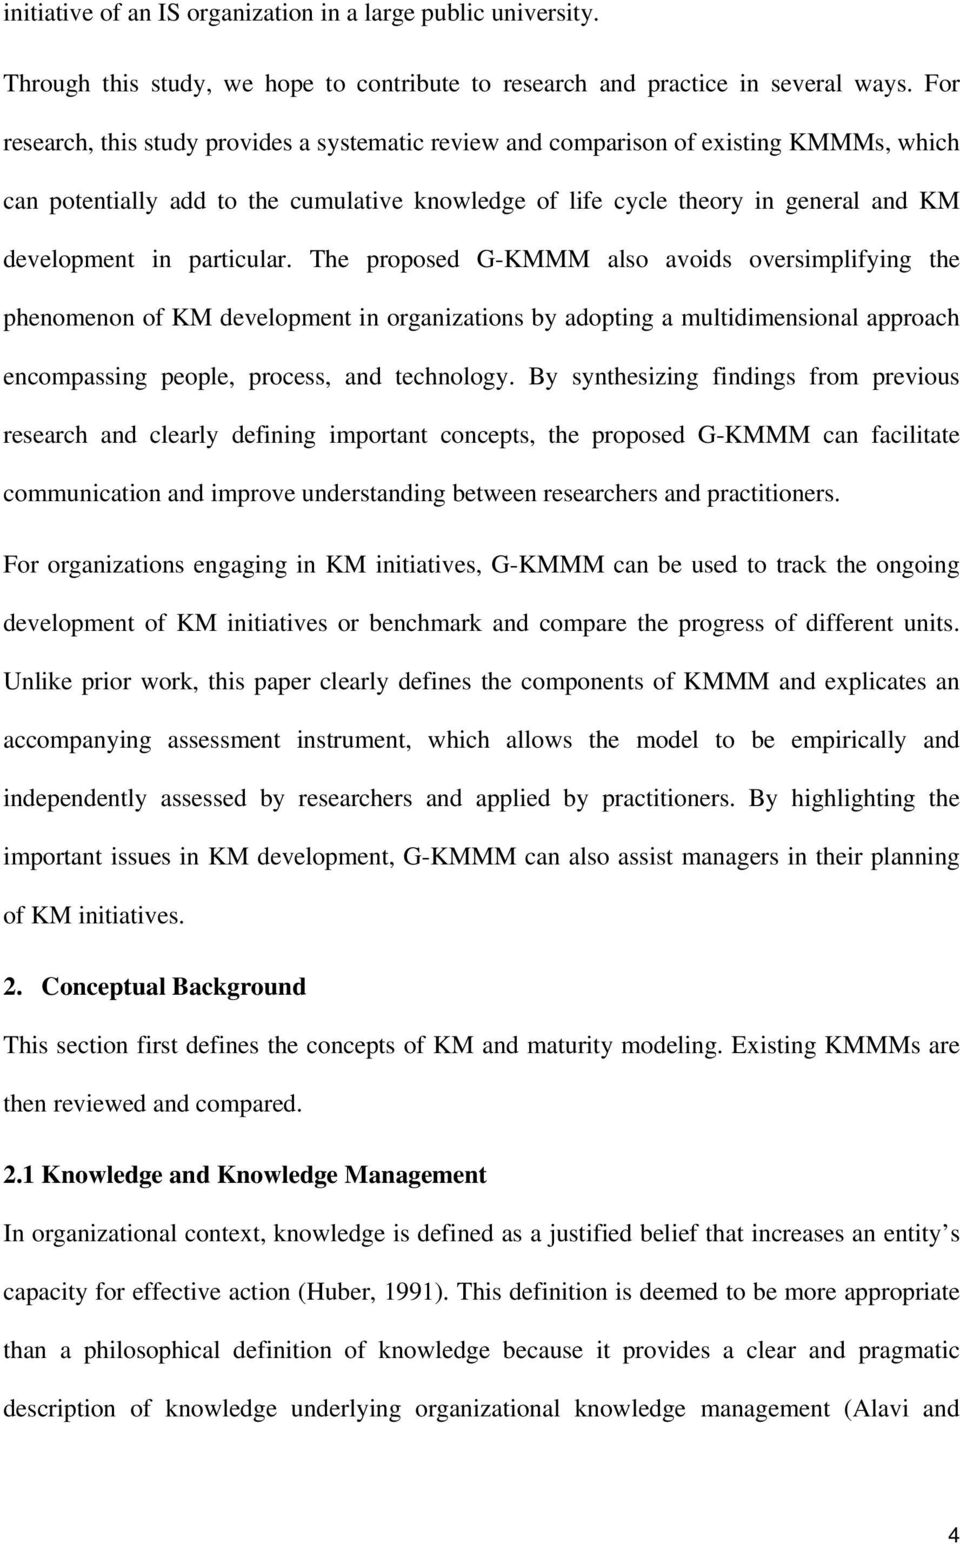 particular. The proposed G-KMMM also avoids oversimplifying the phenomenon of KM development in organizations by adopting a multidimensional approach encompassing people, process, and technology.